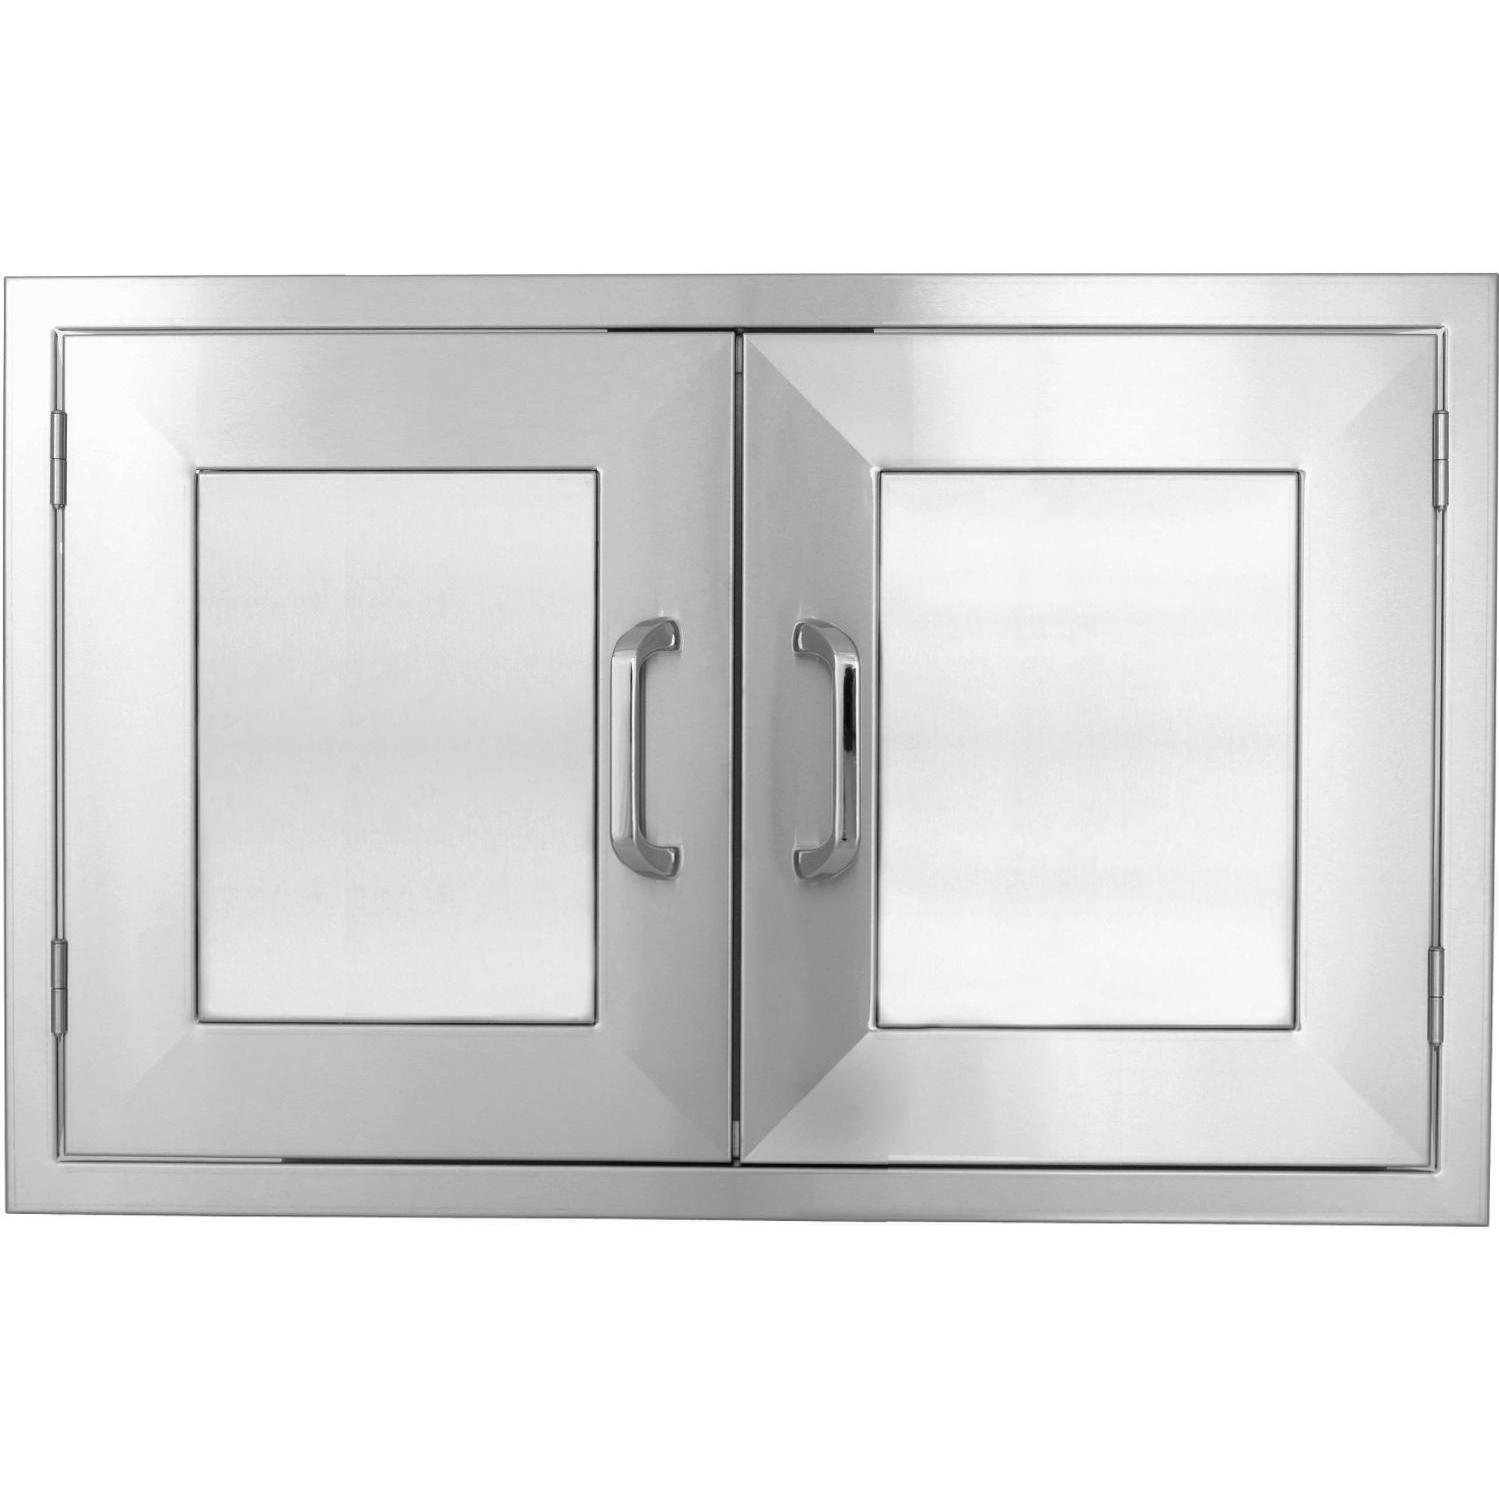 Bbqguys.com Kingston Panel Series 42-inch Stainless Steel Double Access Door